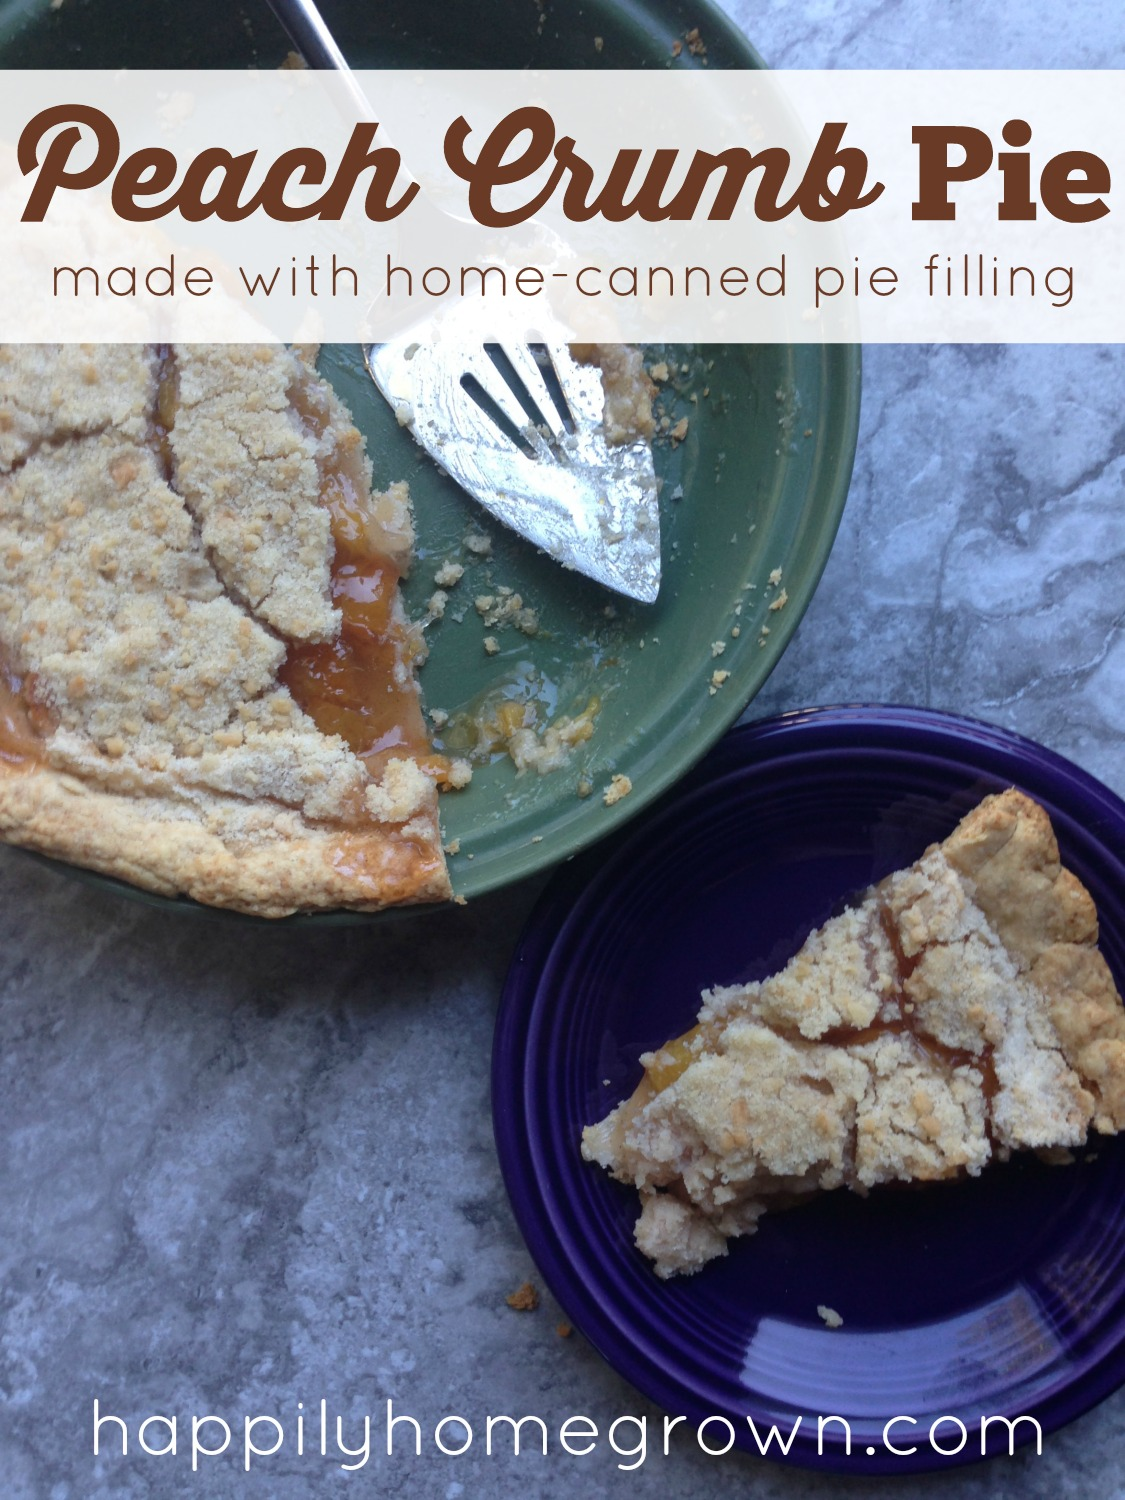 Here in eastern PA it is peach season! That means its time to capture summer in a jar with our homemade peach pie filling, and what better way to enjoy that than in a peach crumb pie.